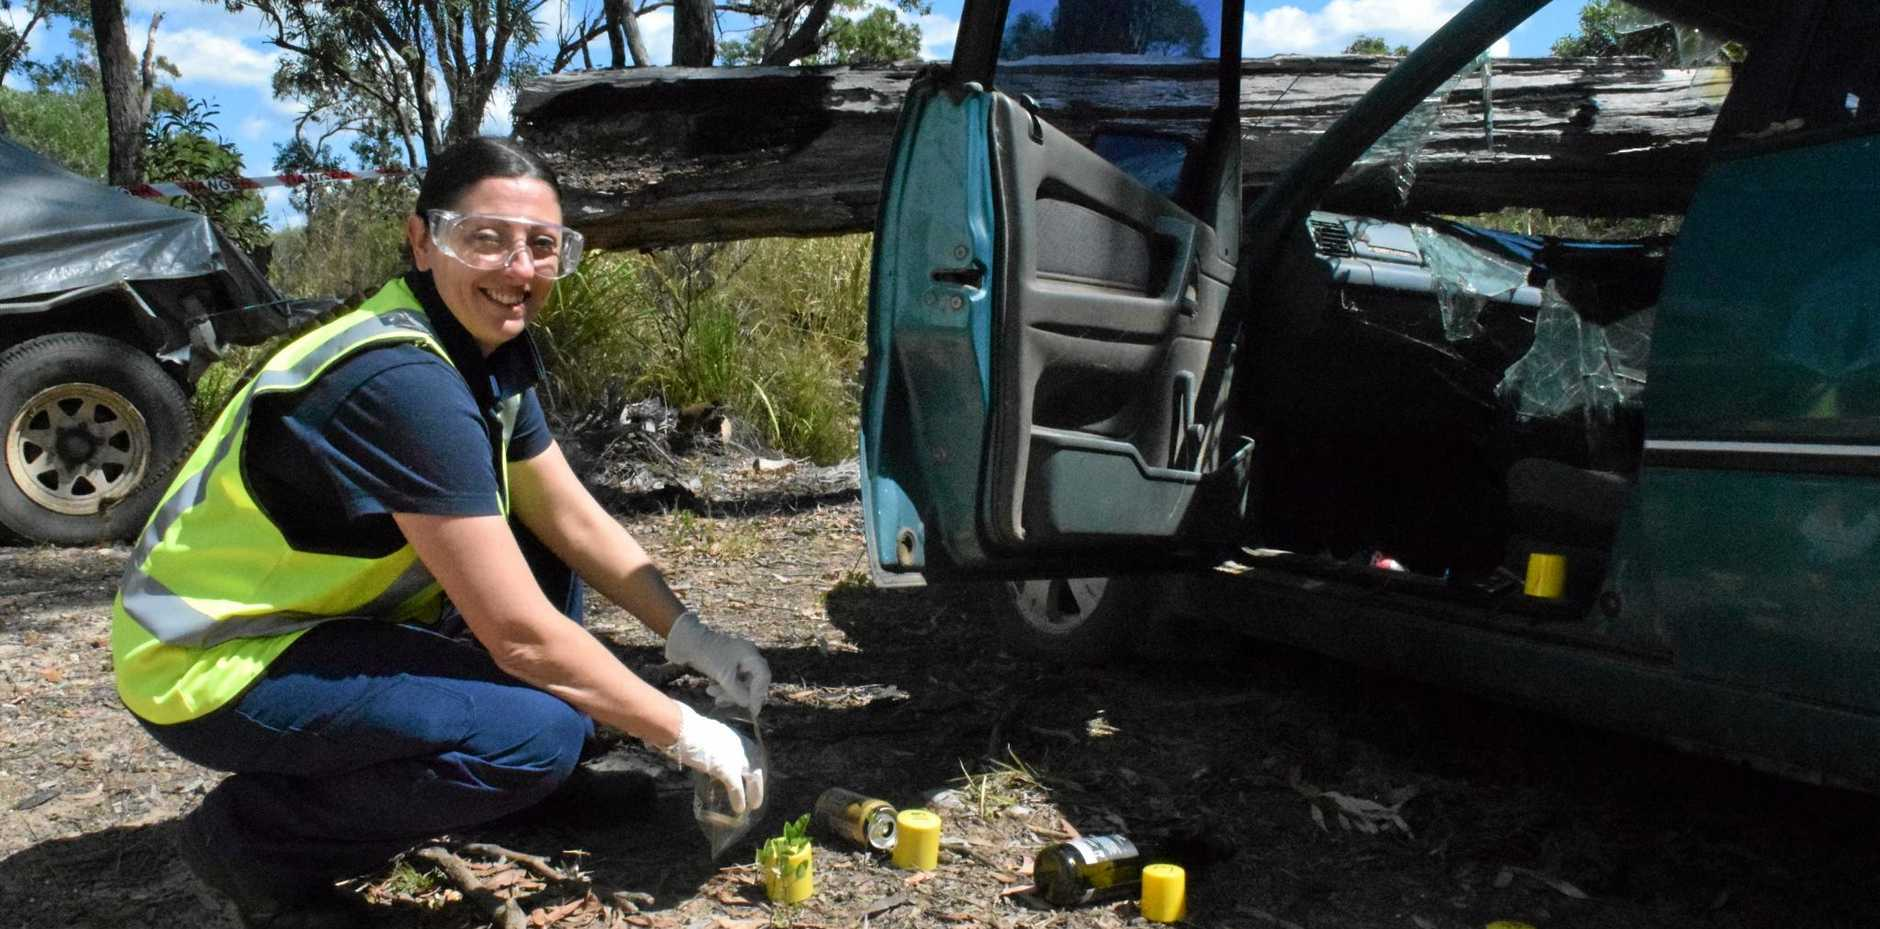 SOLVING THE PUZZLE: Renee Sorbello loves the challenge of accident forensics.